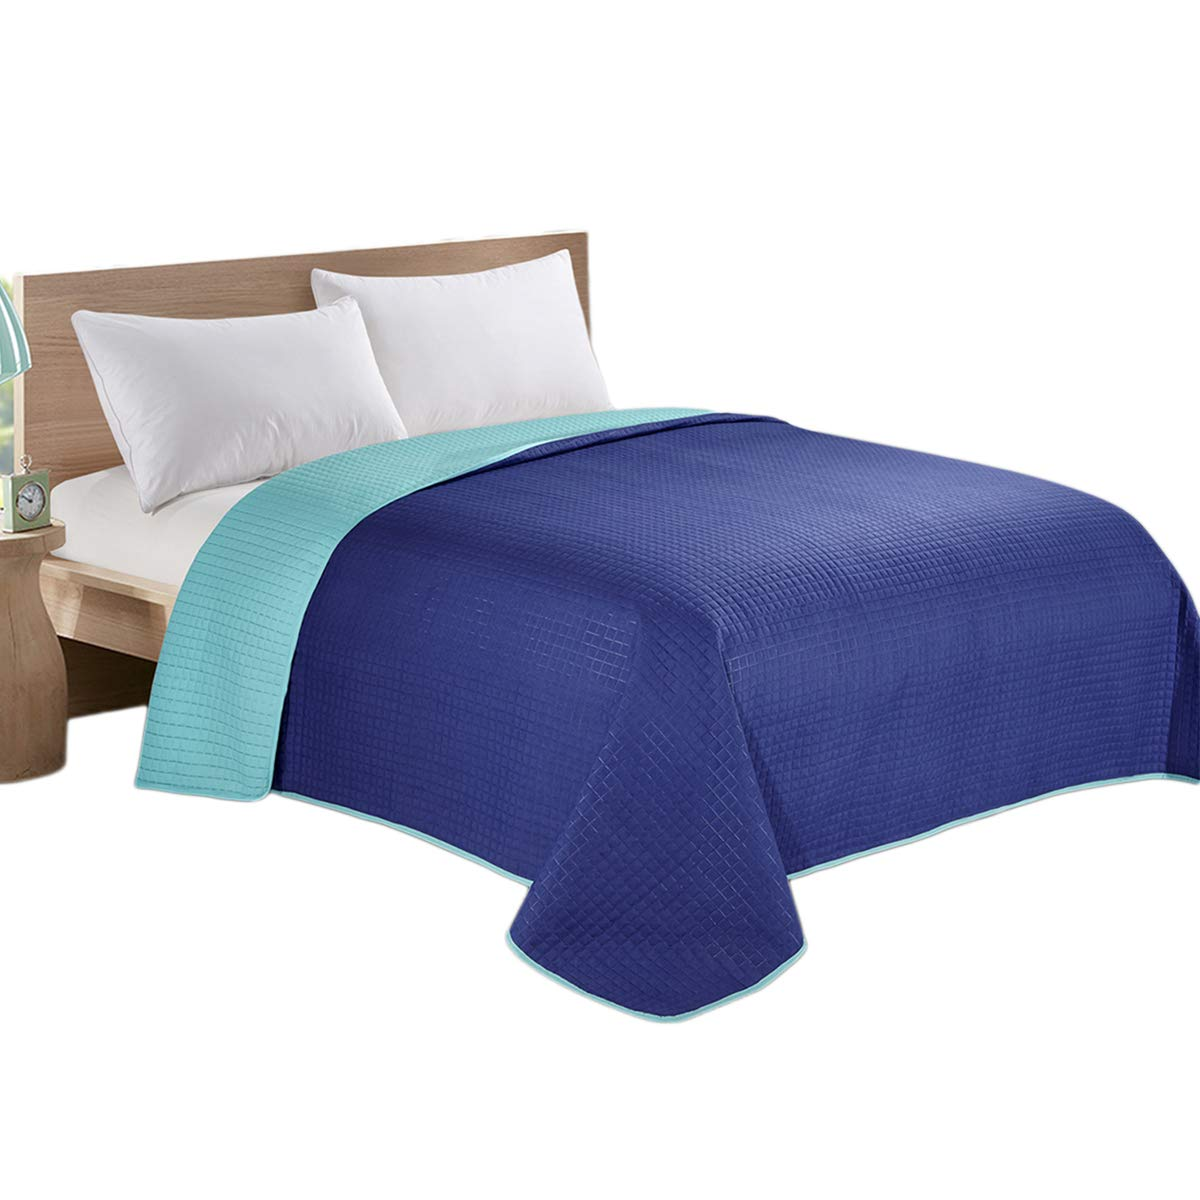 HollyHOME Reversible Super Soft Solid Single Quilted Bed Quilt Bedspread Comforter Bed Cover, Blue and Teal, Twin - HollyHOME